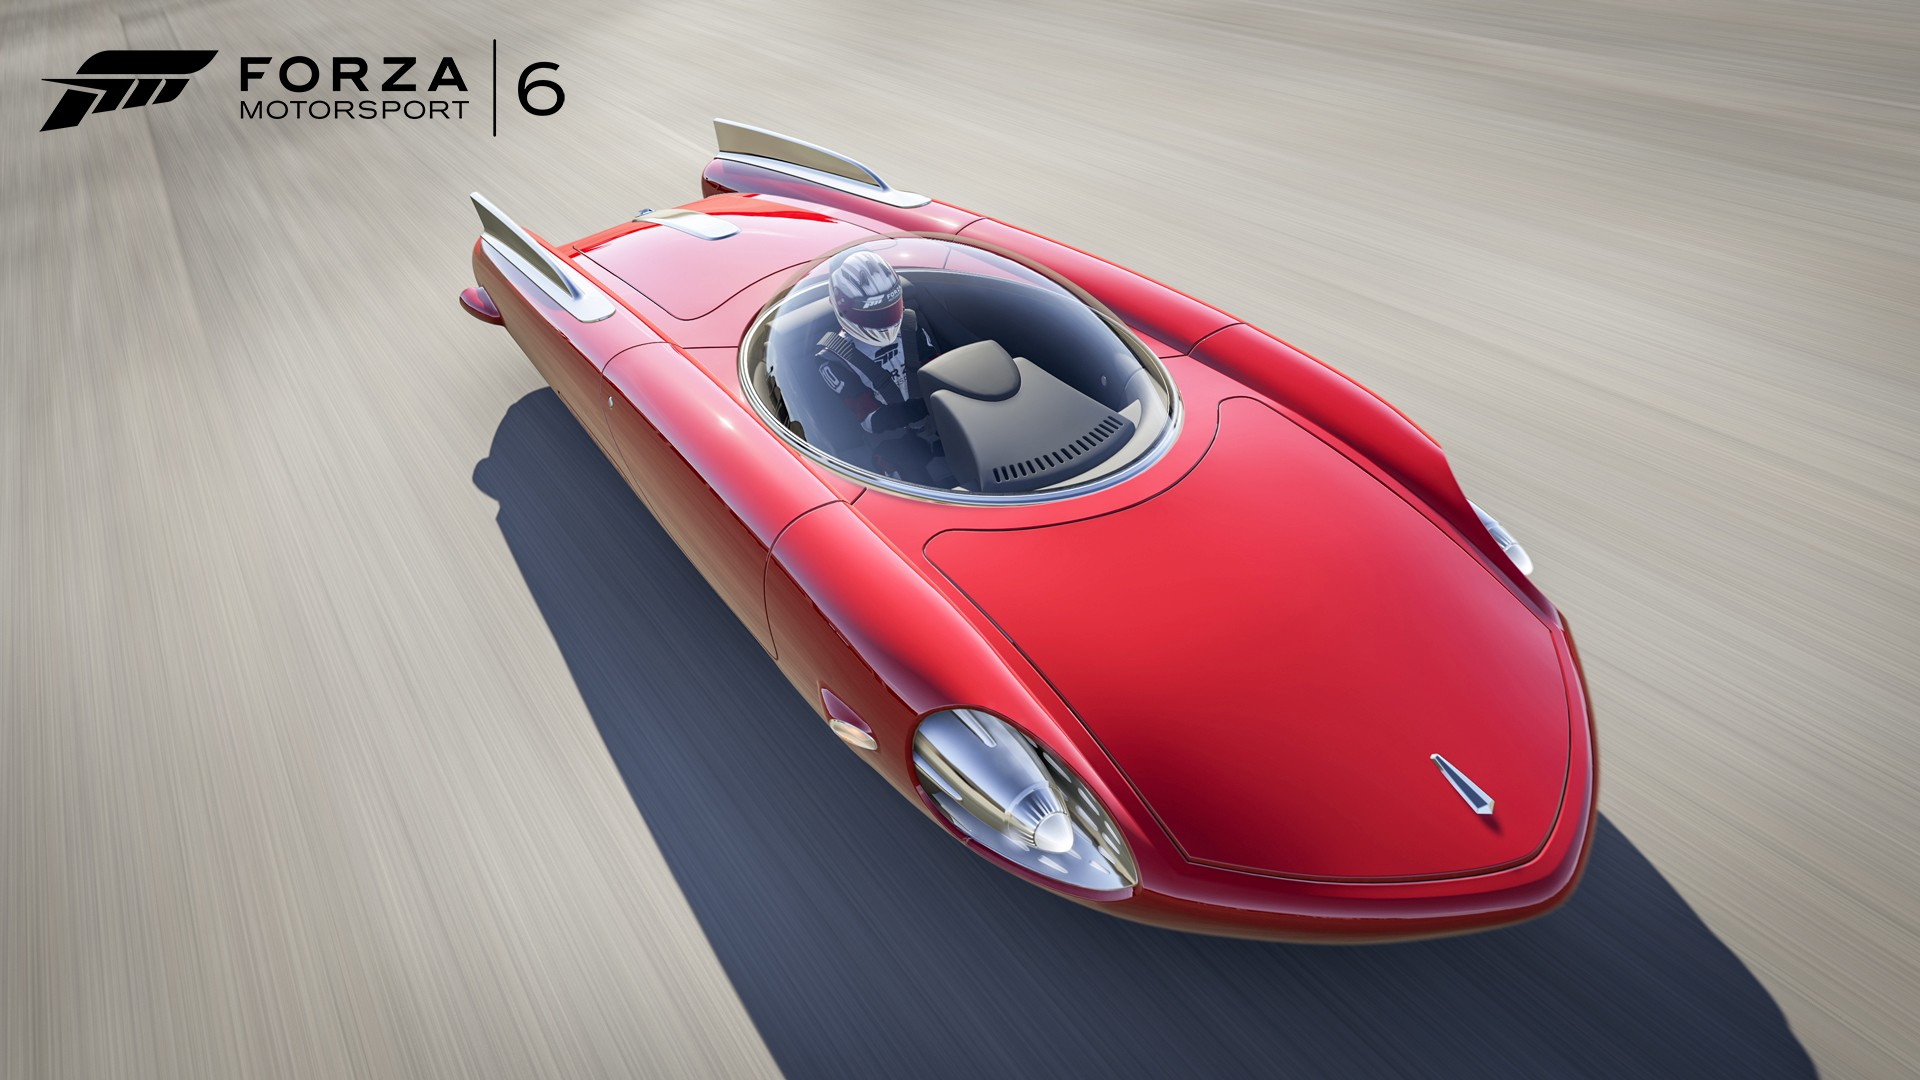 Forza Motorsport 6 2069 Chryslus Rocket 69 (Xbox One)